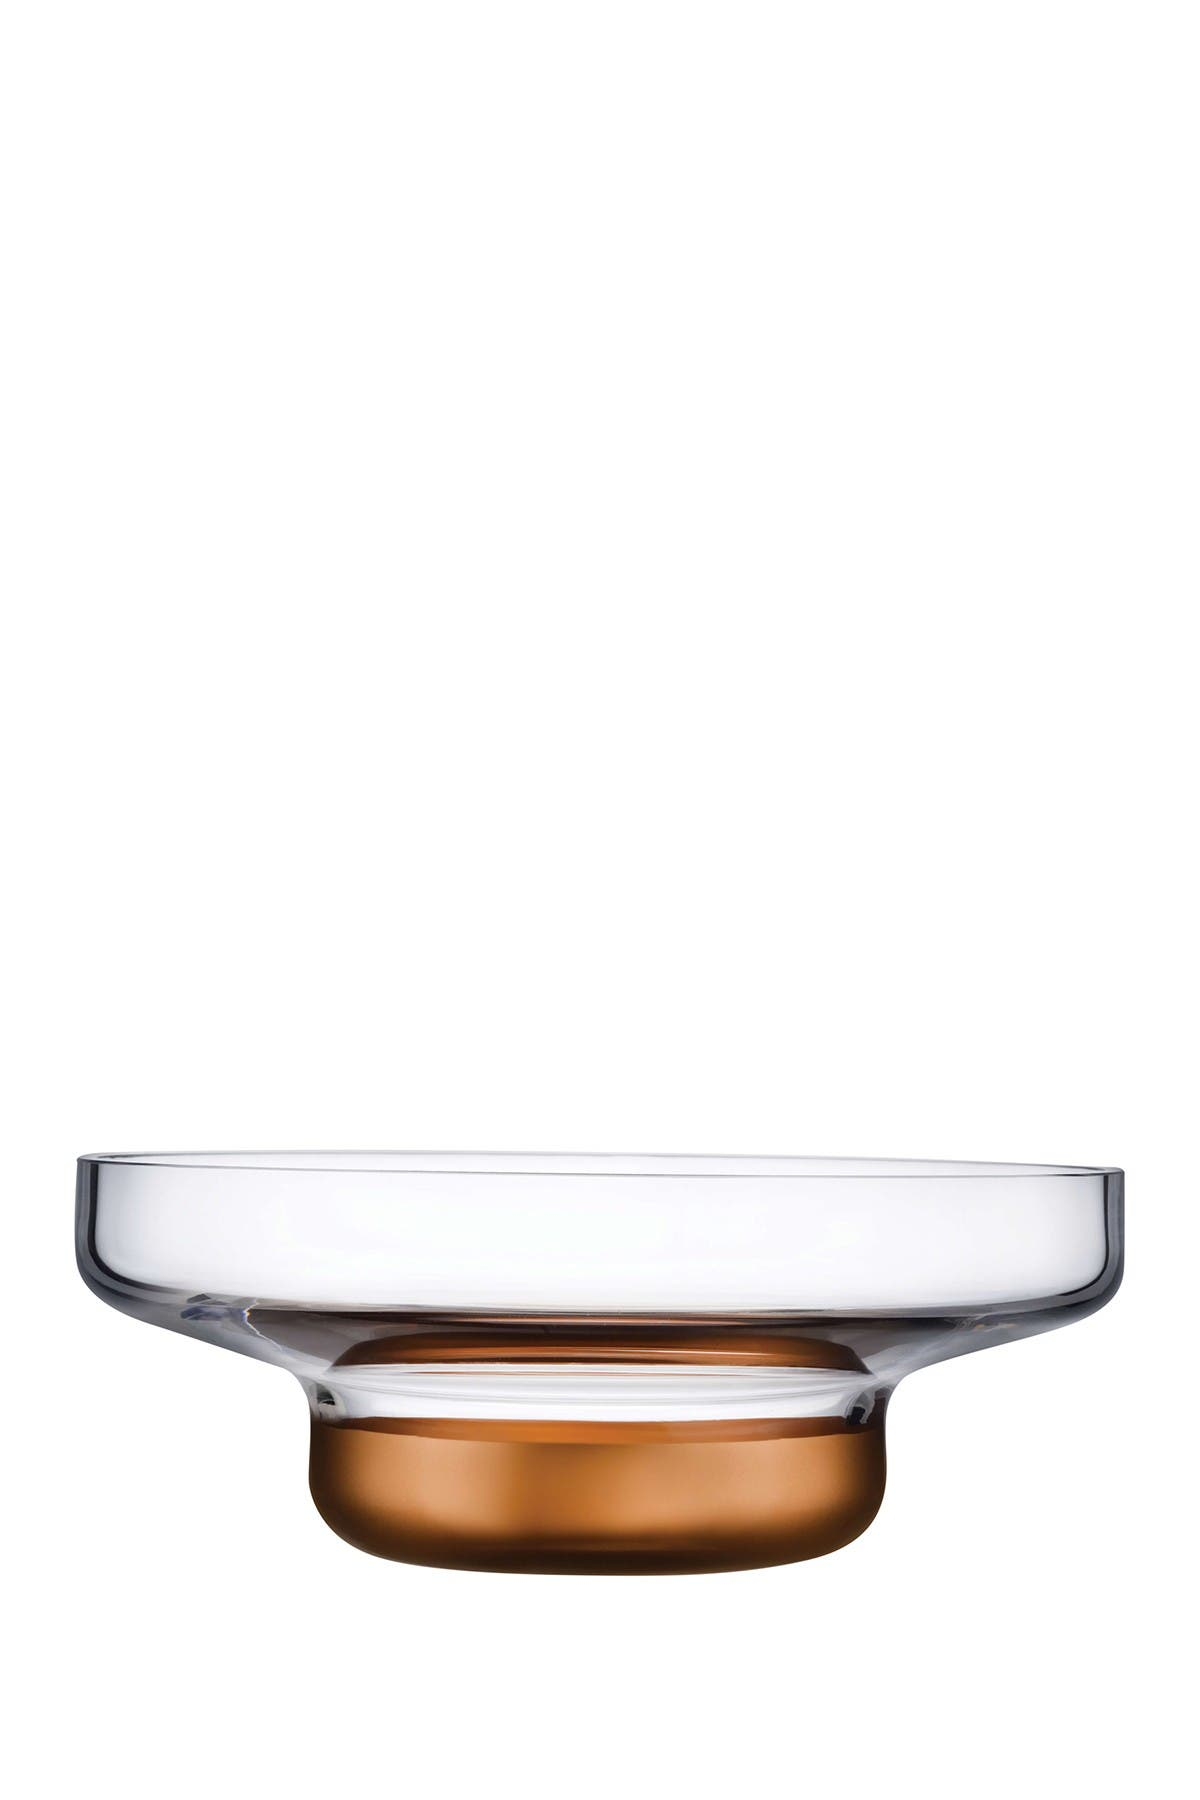 Image of Nude Glass Contour Bowl - Wide with Clear Top and Copper Base